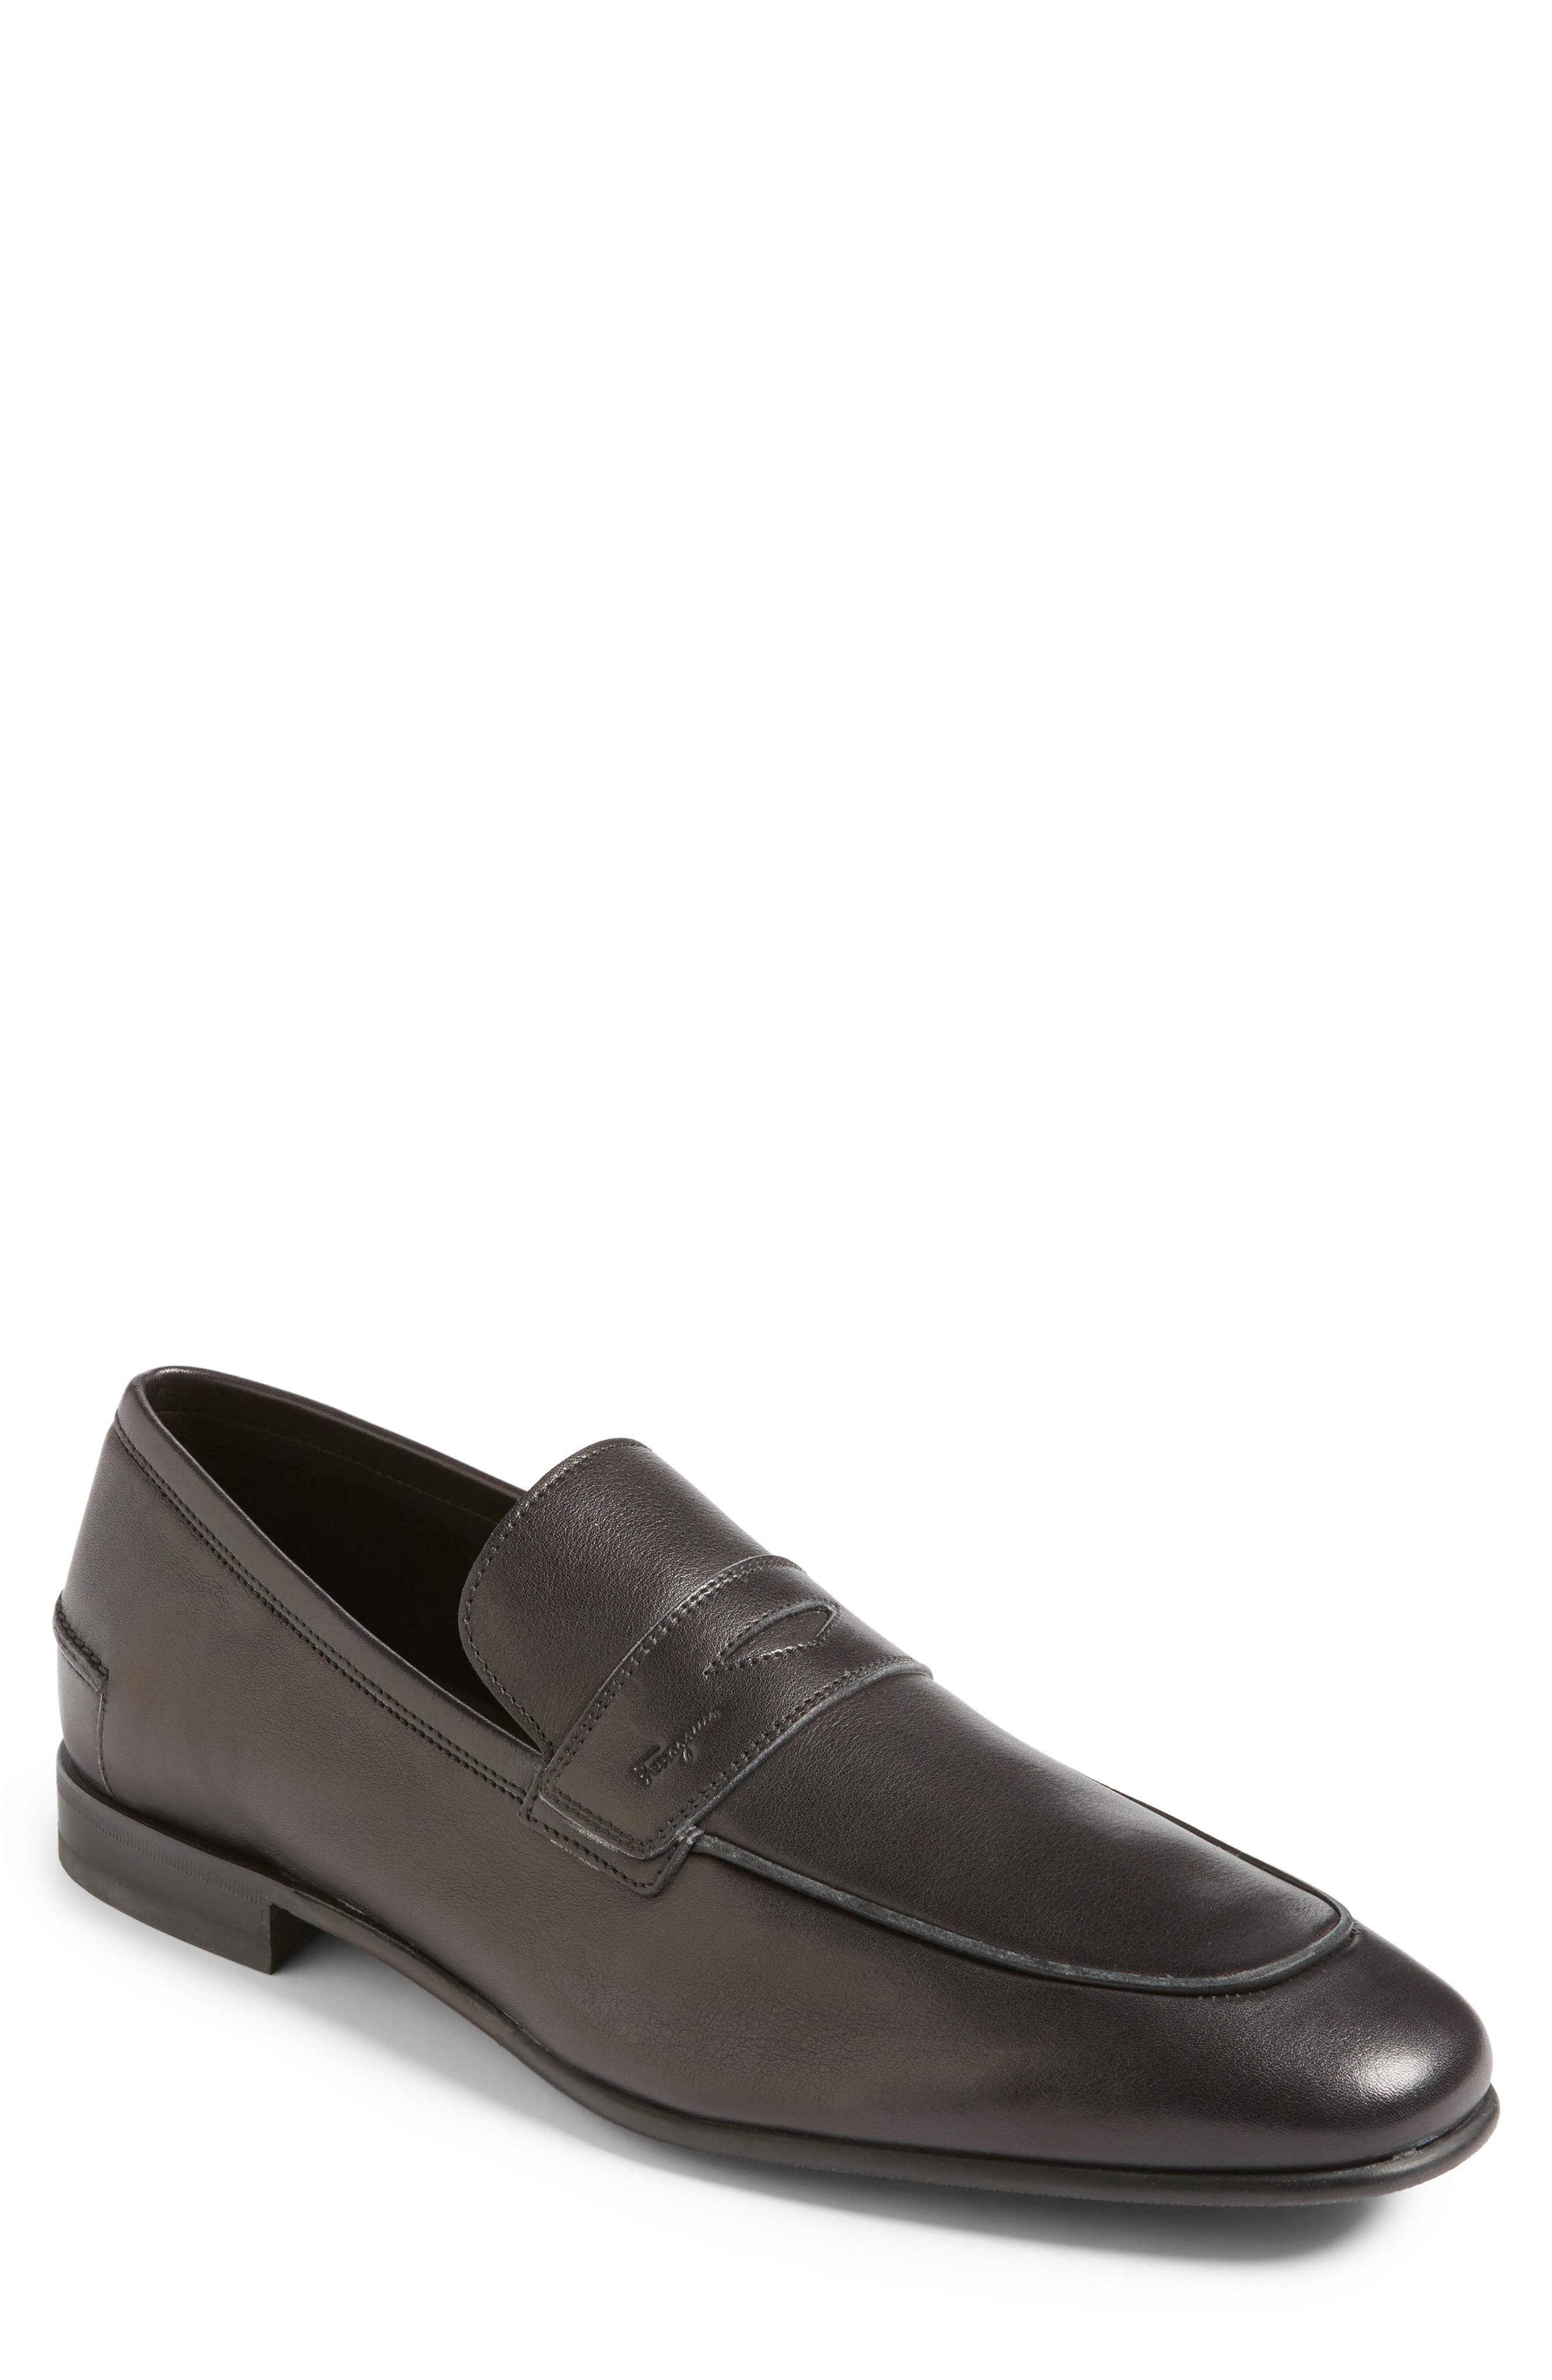 Duchamp Penny Loafer,                             Main thumbnail 1, color,                             Nero Leather